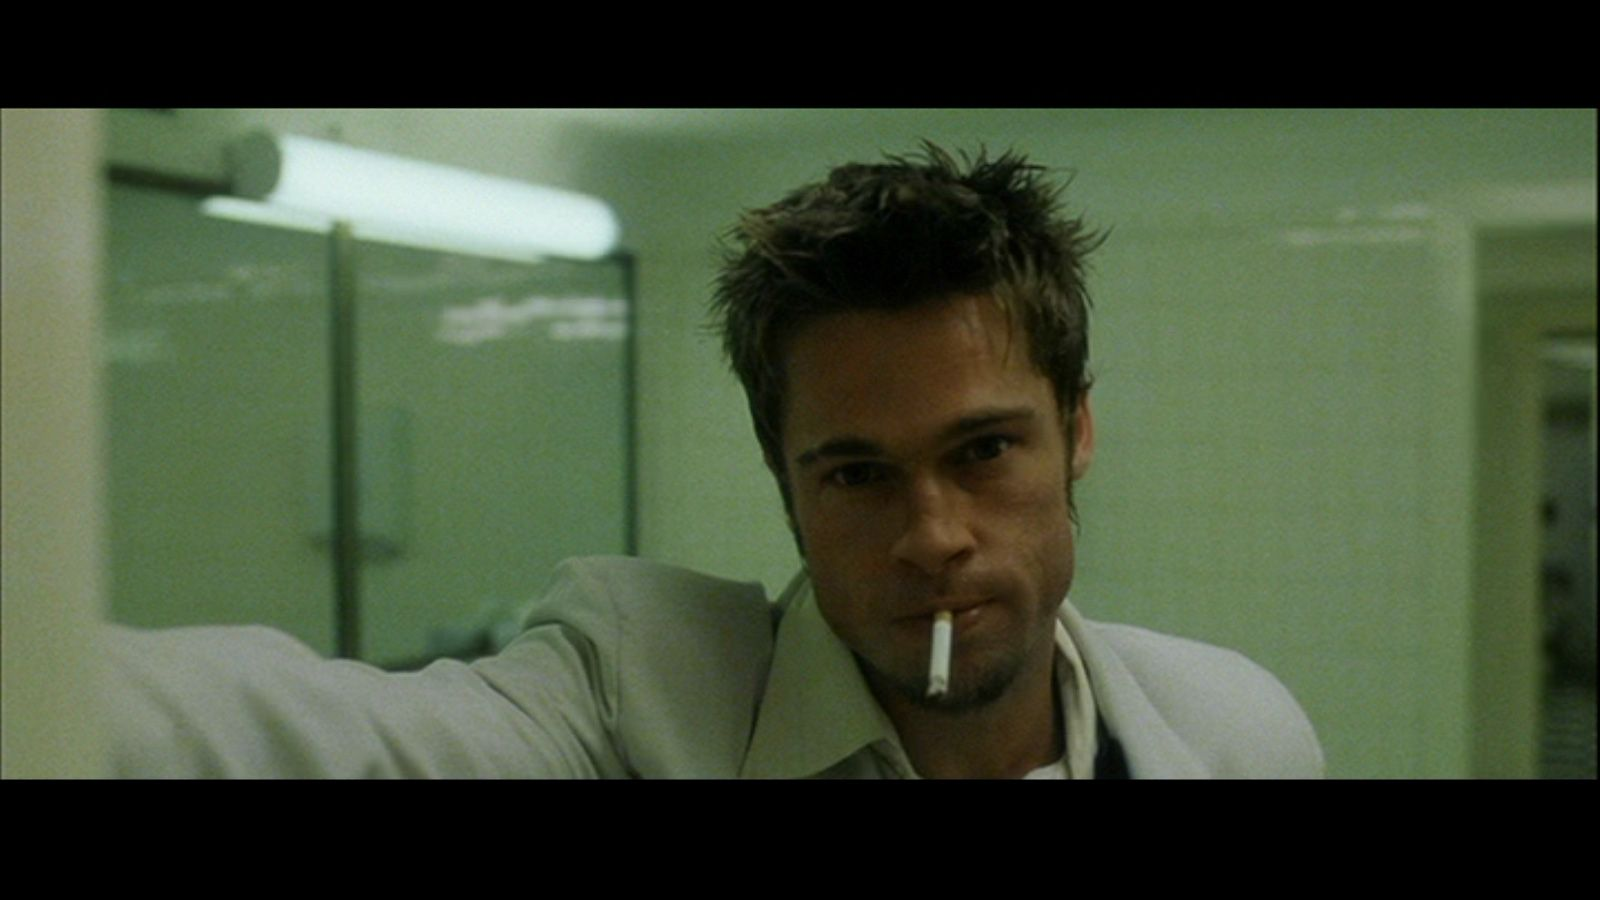 Fight club homework assignments